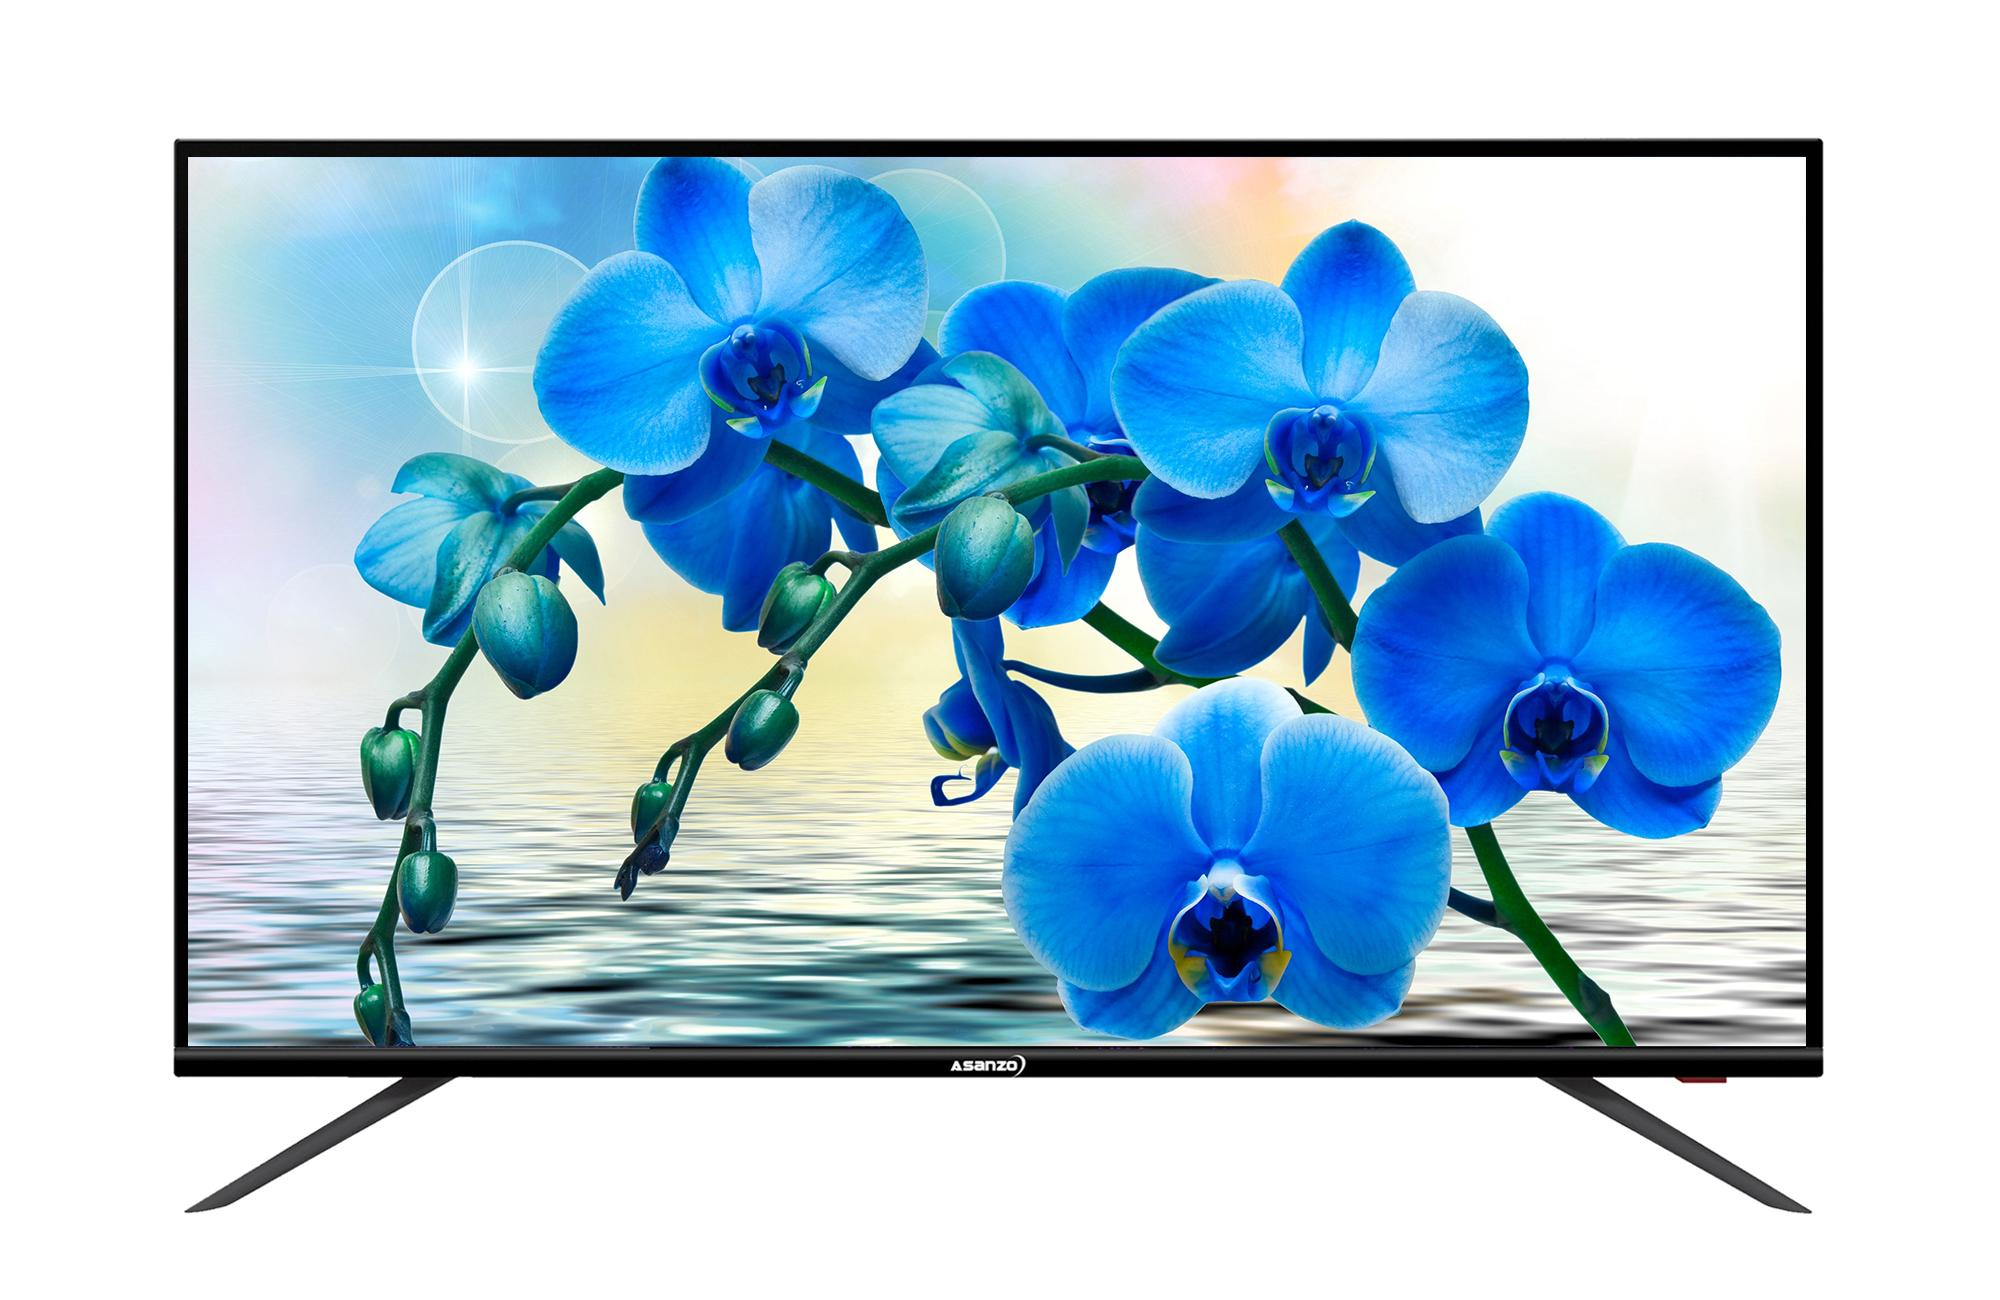 Tivi Led Asanzo 43 inch Full HD – Model 43AT500 (Đen)